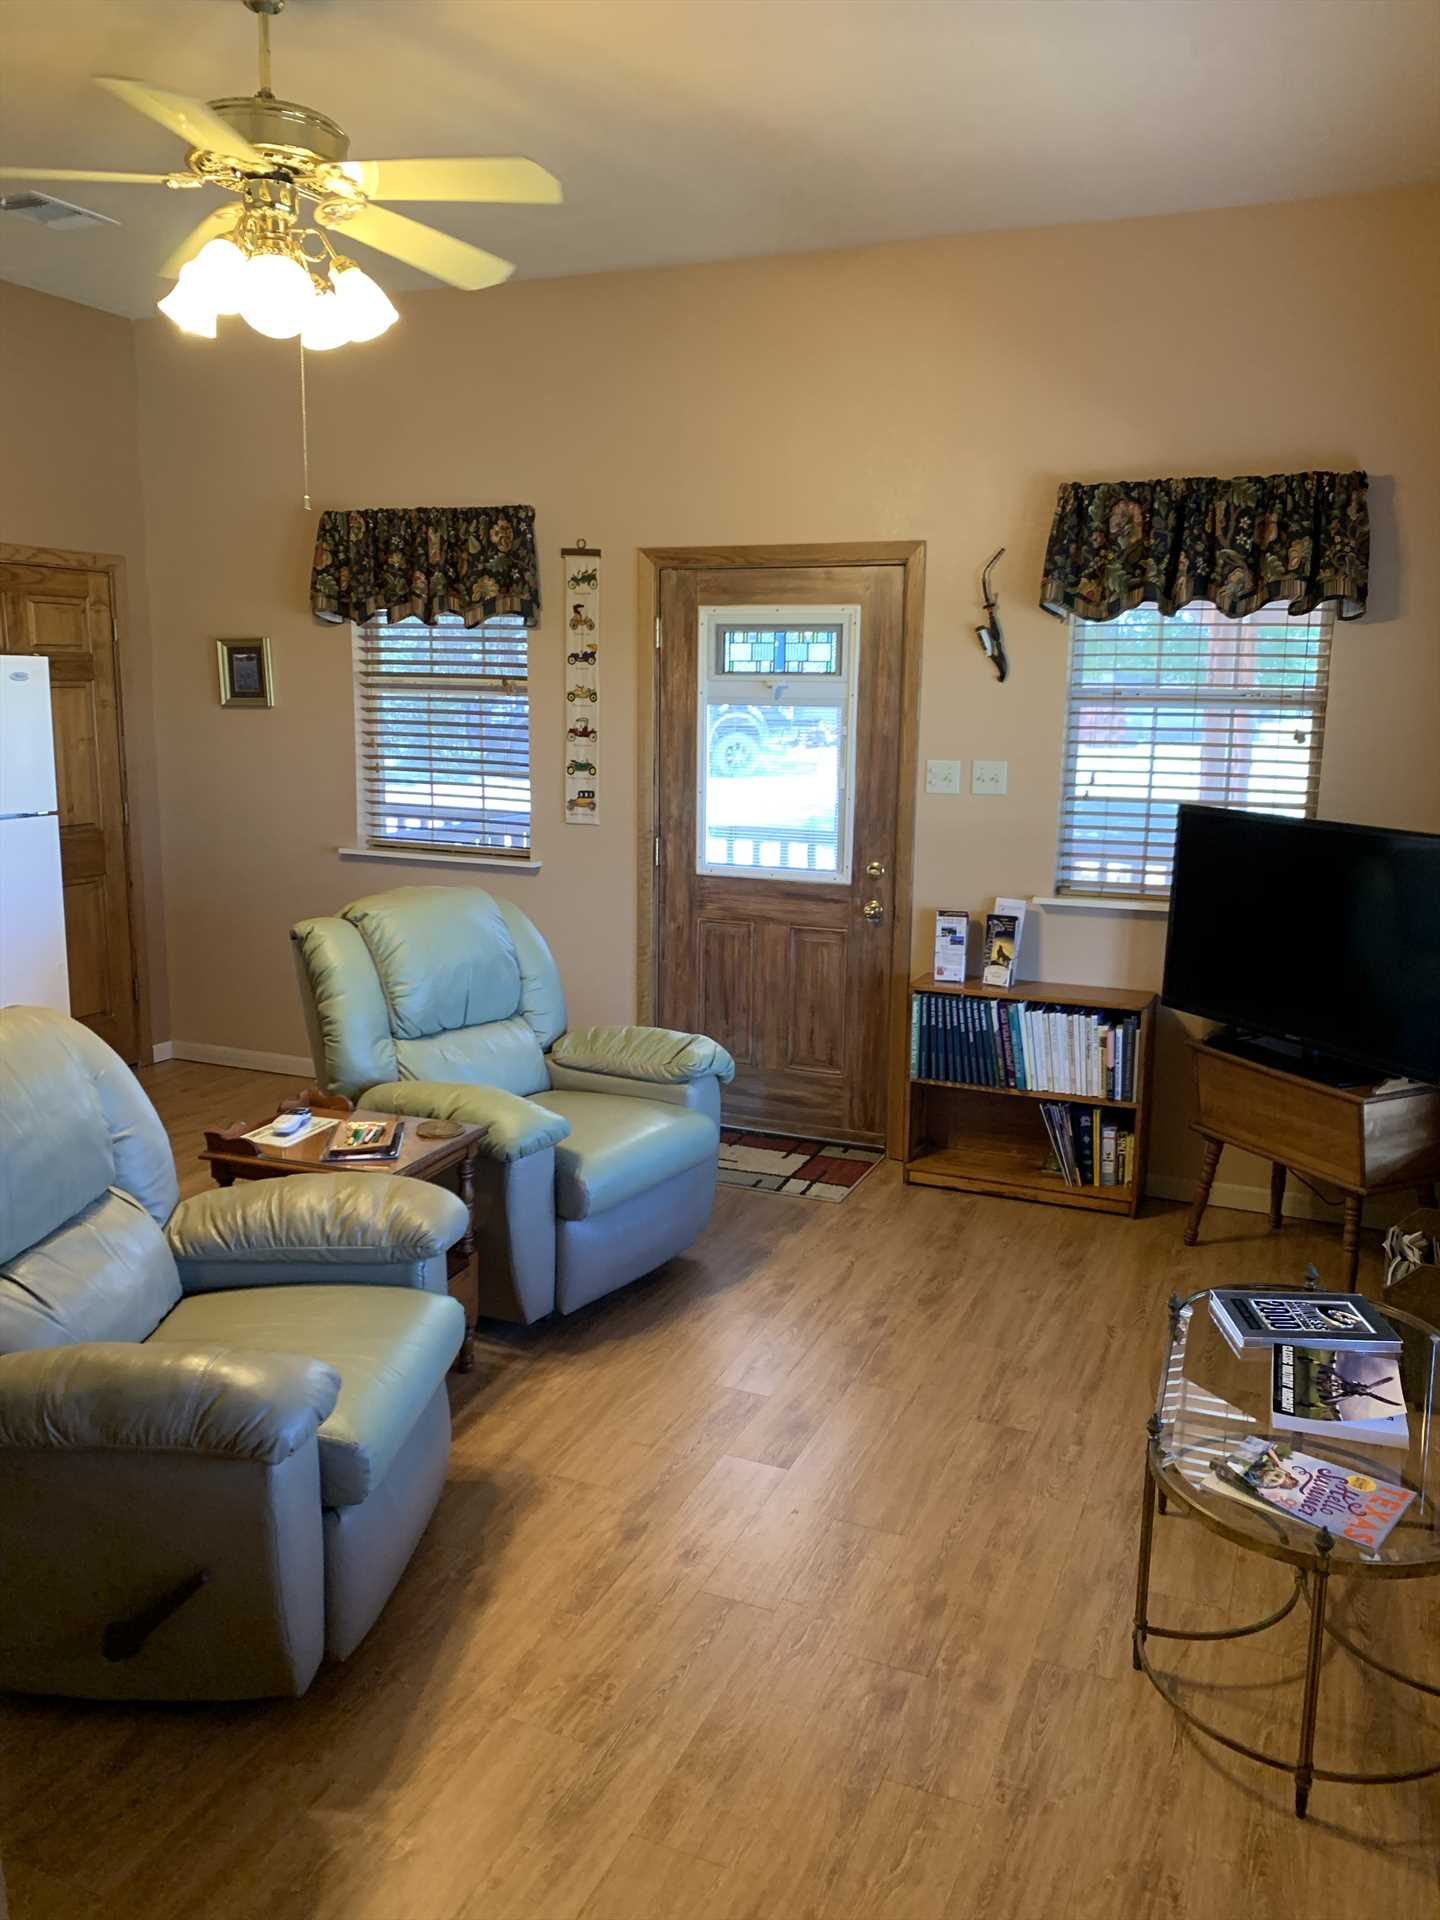 Cozy, stylish, and comfortable, the living area's a wonderful place to recline and decompress.